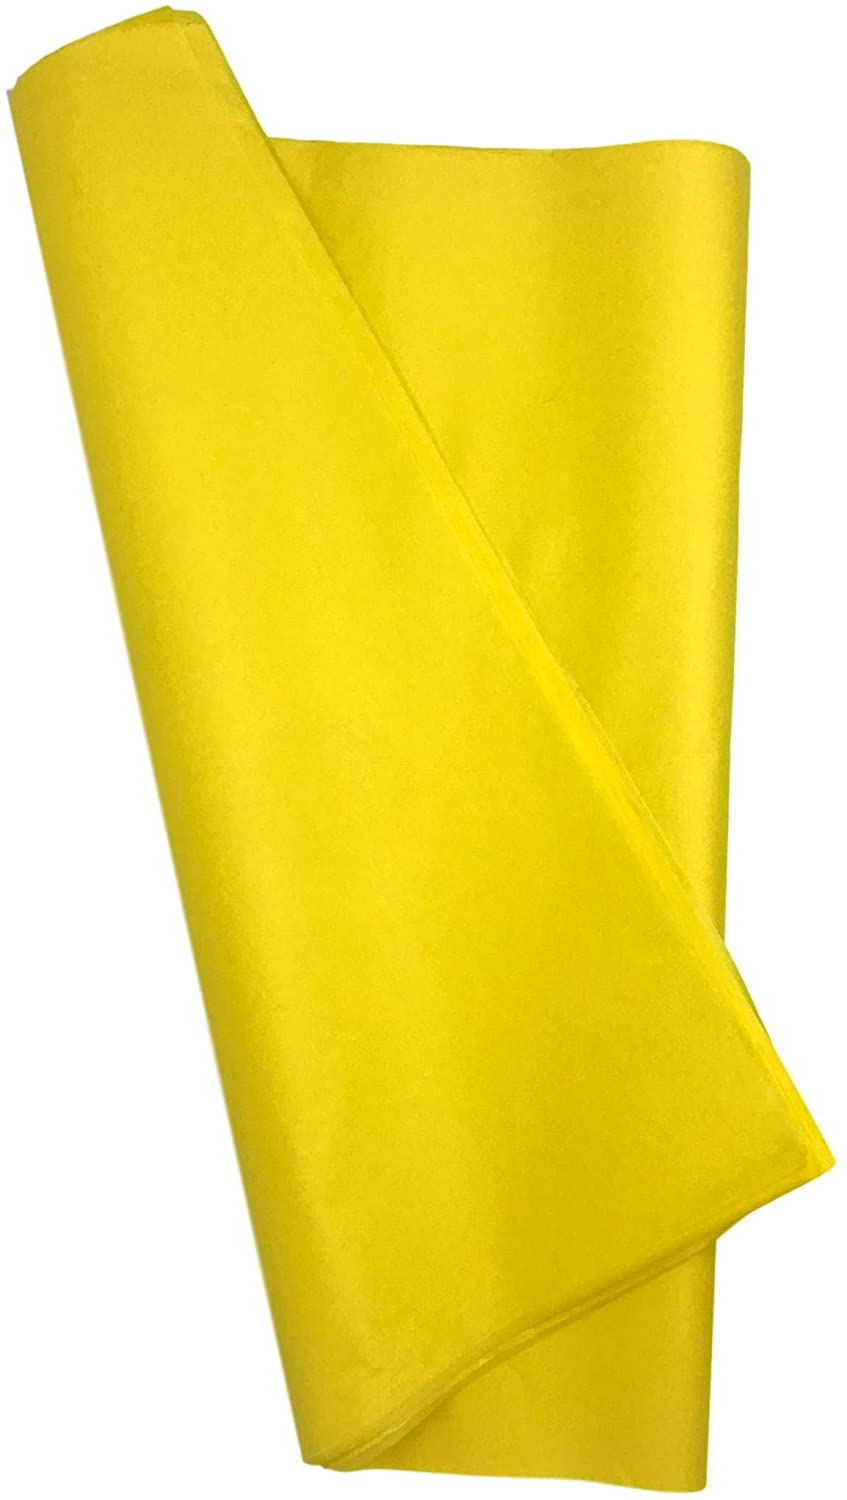 7MB Premium Art Tissue Paper - Perfect Gift Wrap Tissue Paper 20 x 30 Inch Acid-Free! - 100 Sheet Value Pack Papel China for Art Craft Floral Birthday Party Festival Gift Wrapping (Yellow)